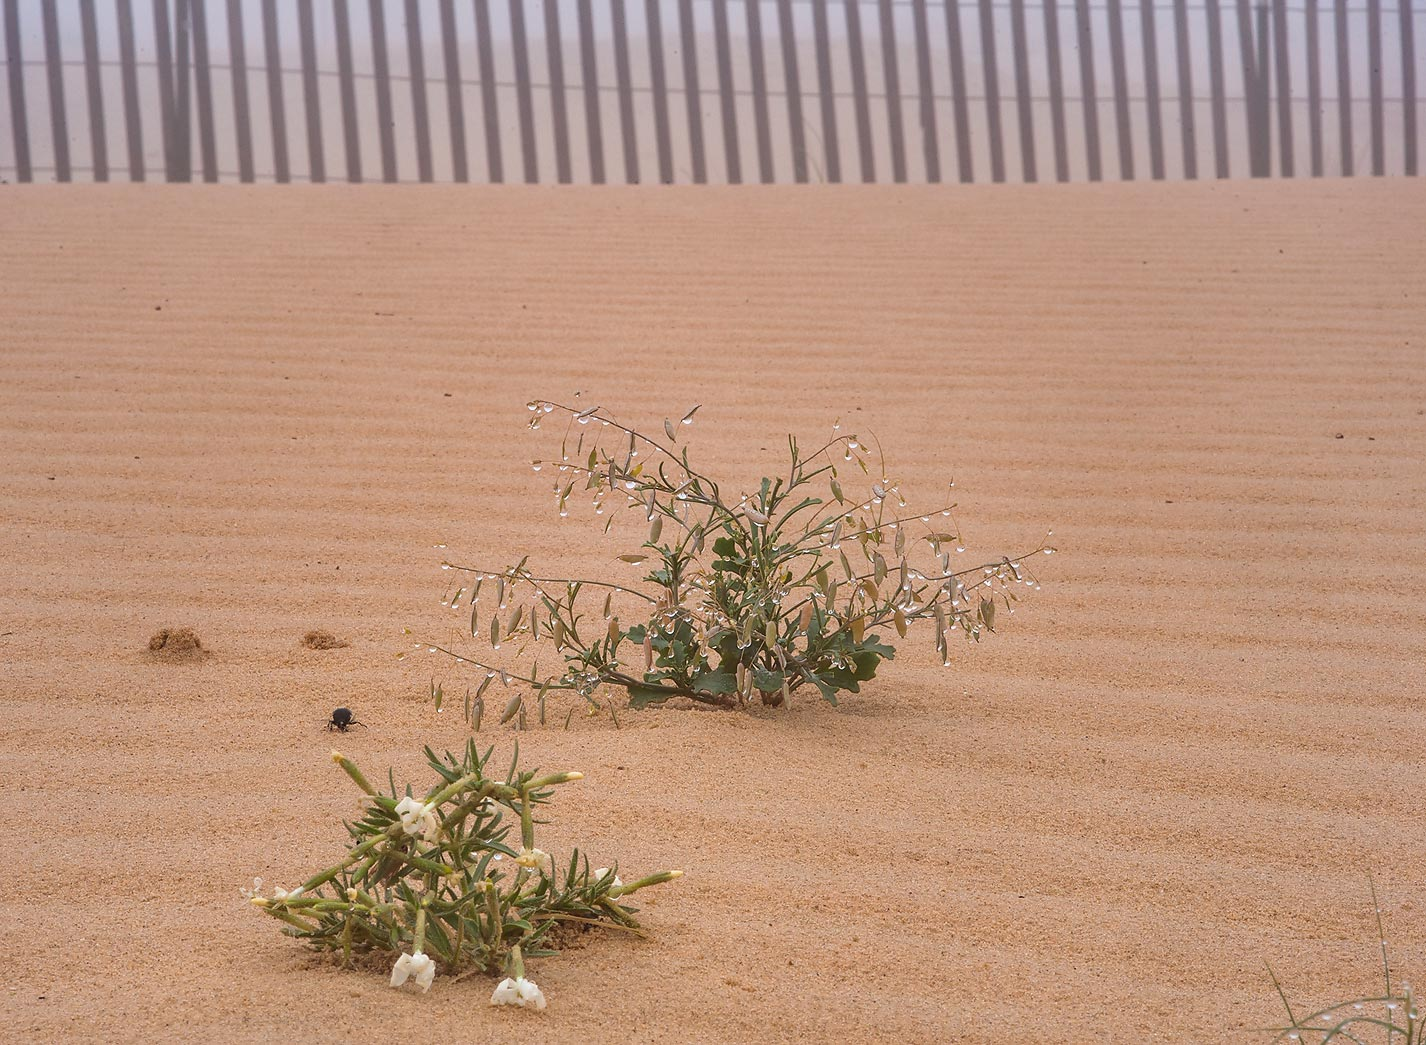 Plants in windblown sand on roadside of Salwa Rd...of Khashem Al Nekhsh. Southern Qatar